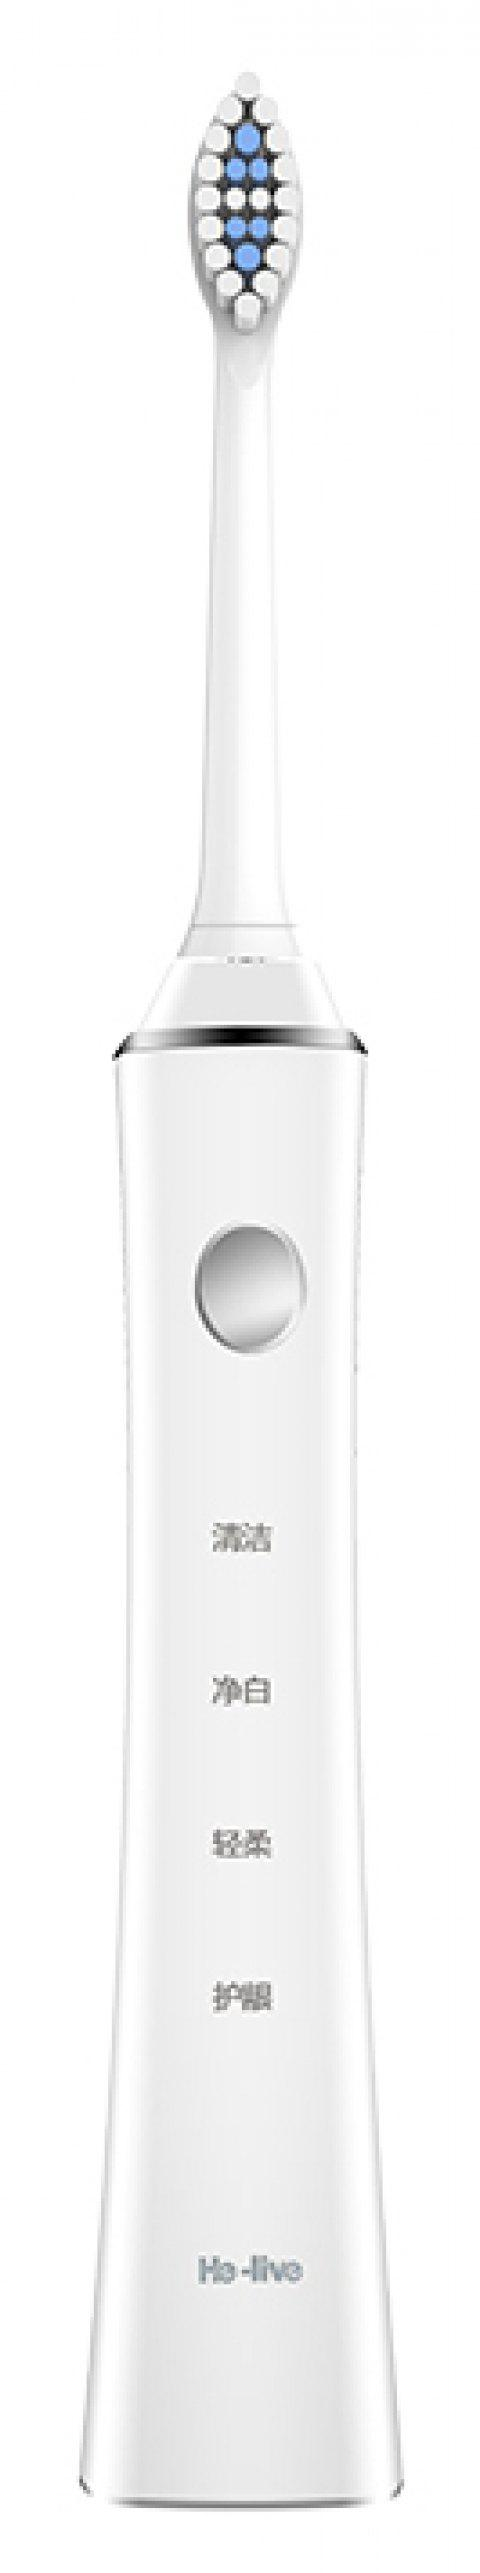 Household Electric Toothbrush - MILK WHITE